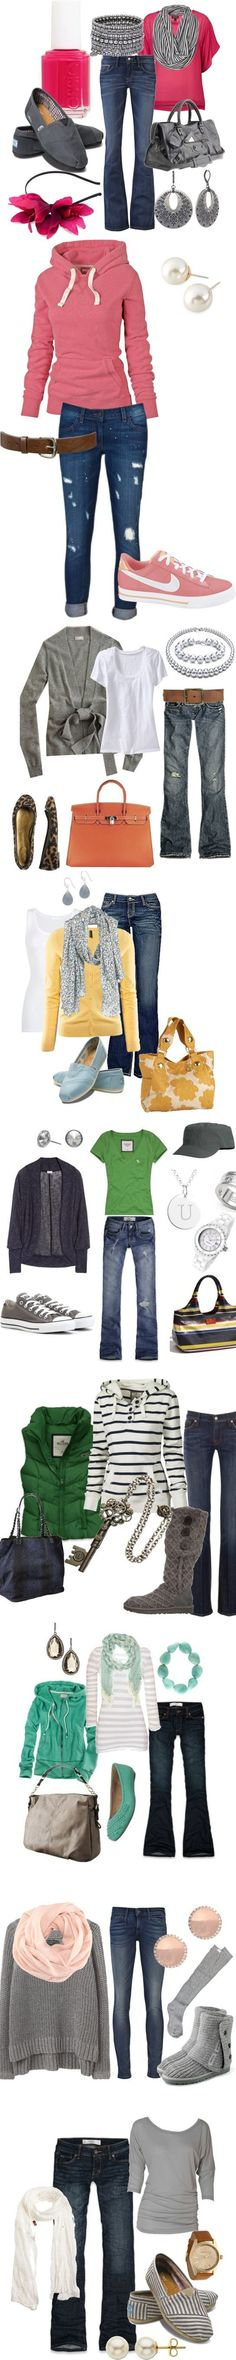 Fall Comfort- all great outfits for cuddly work days!!